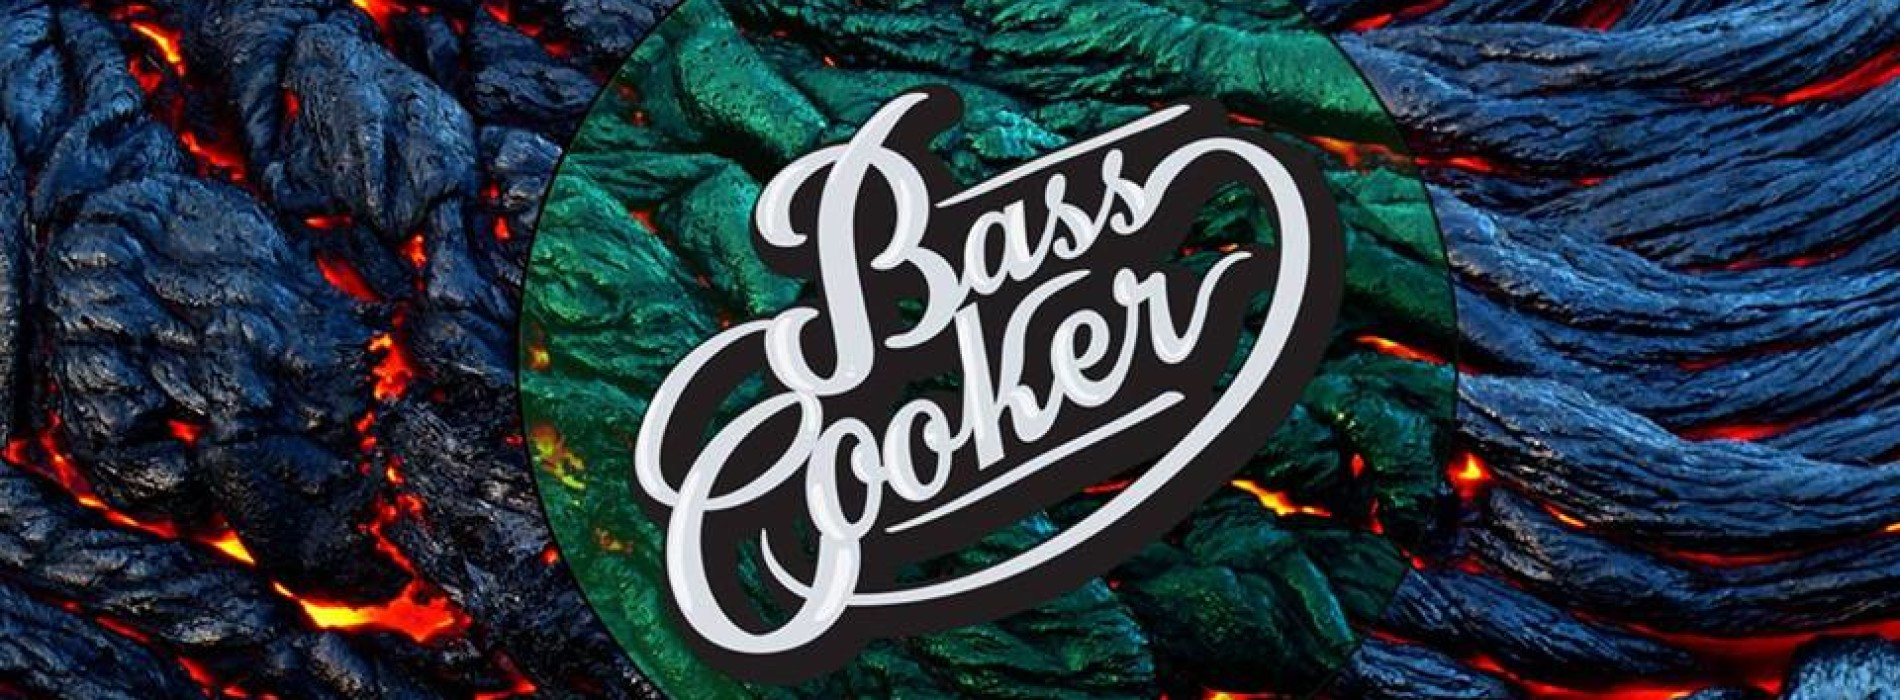 Basscooker Live Session @ The Old, The Bad & The Ugly